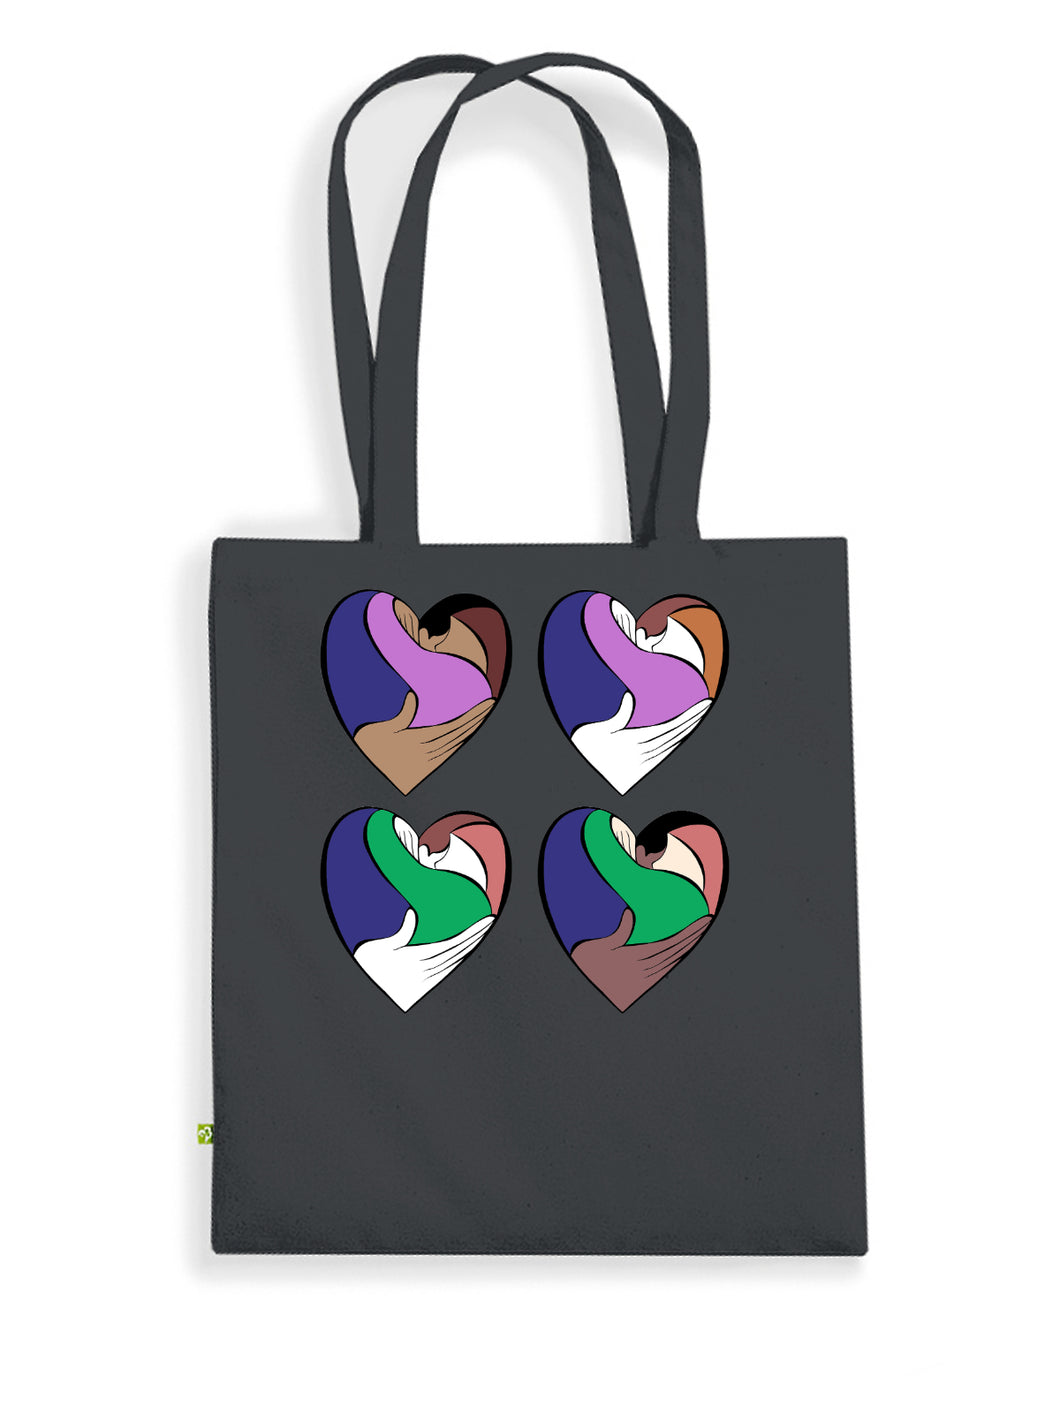 UniverSOUL Love - Reusable Bag